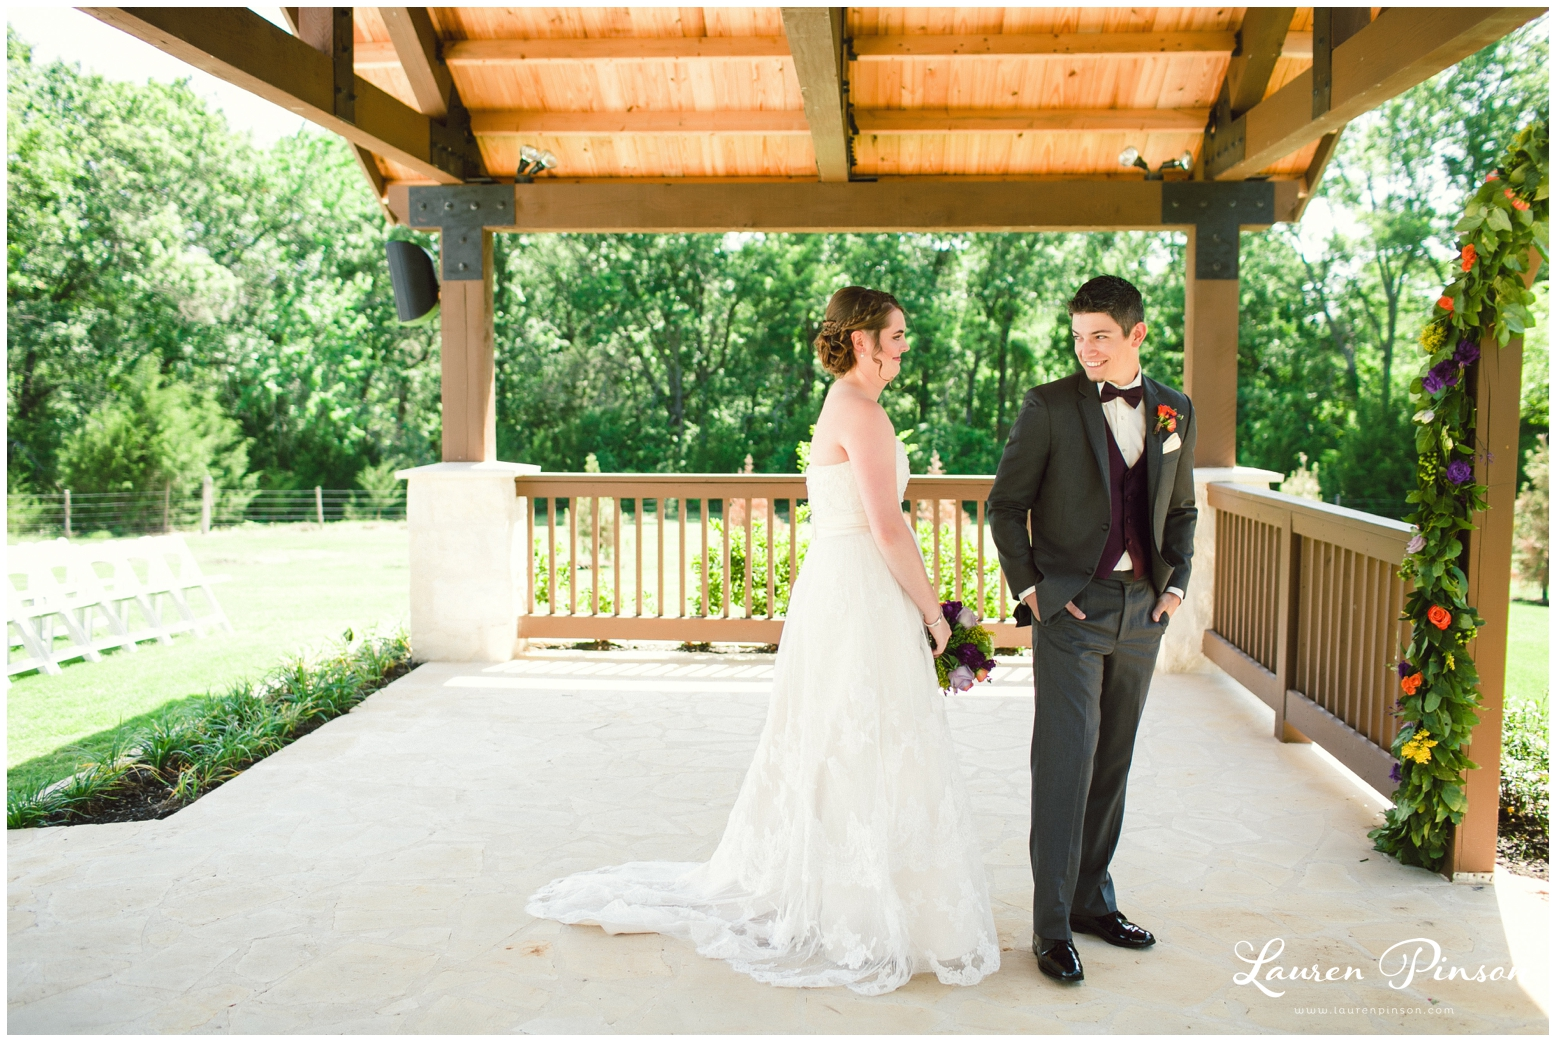 anna-texas-wedding-at-heritage-springs-by-the-springs-events-holly-villes-designs-texas-wedding-photography-mckinney-texas-hill-country-fredericksburg_0234.jpg